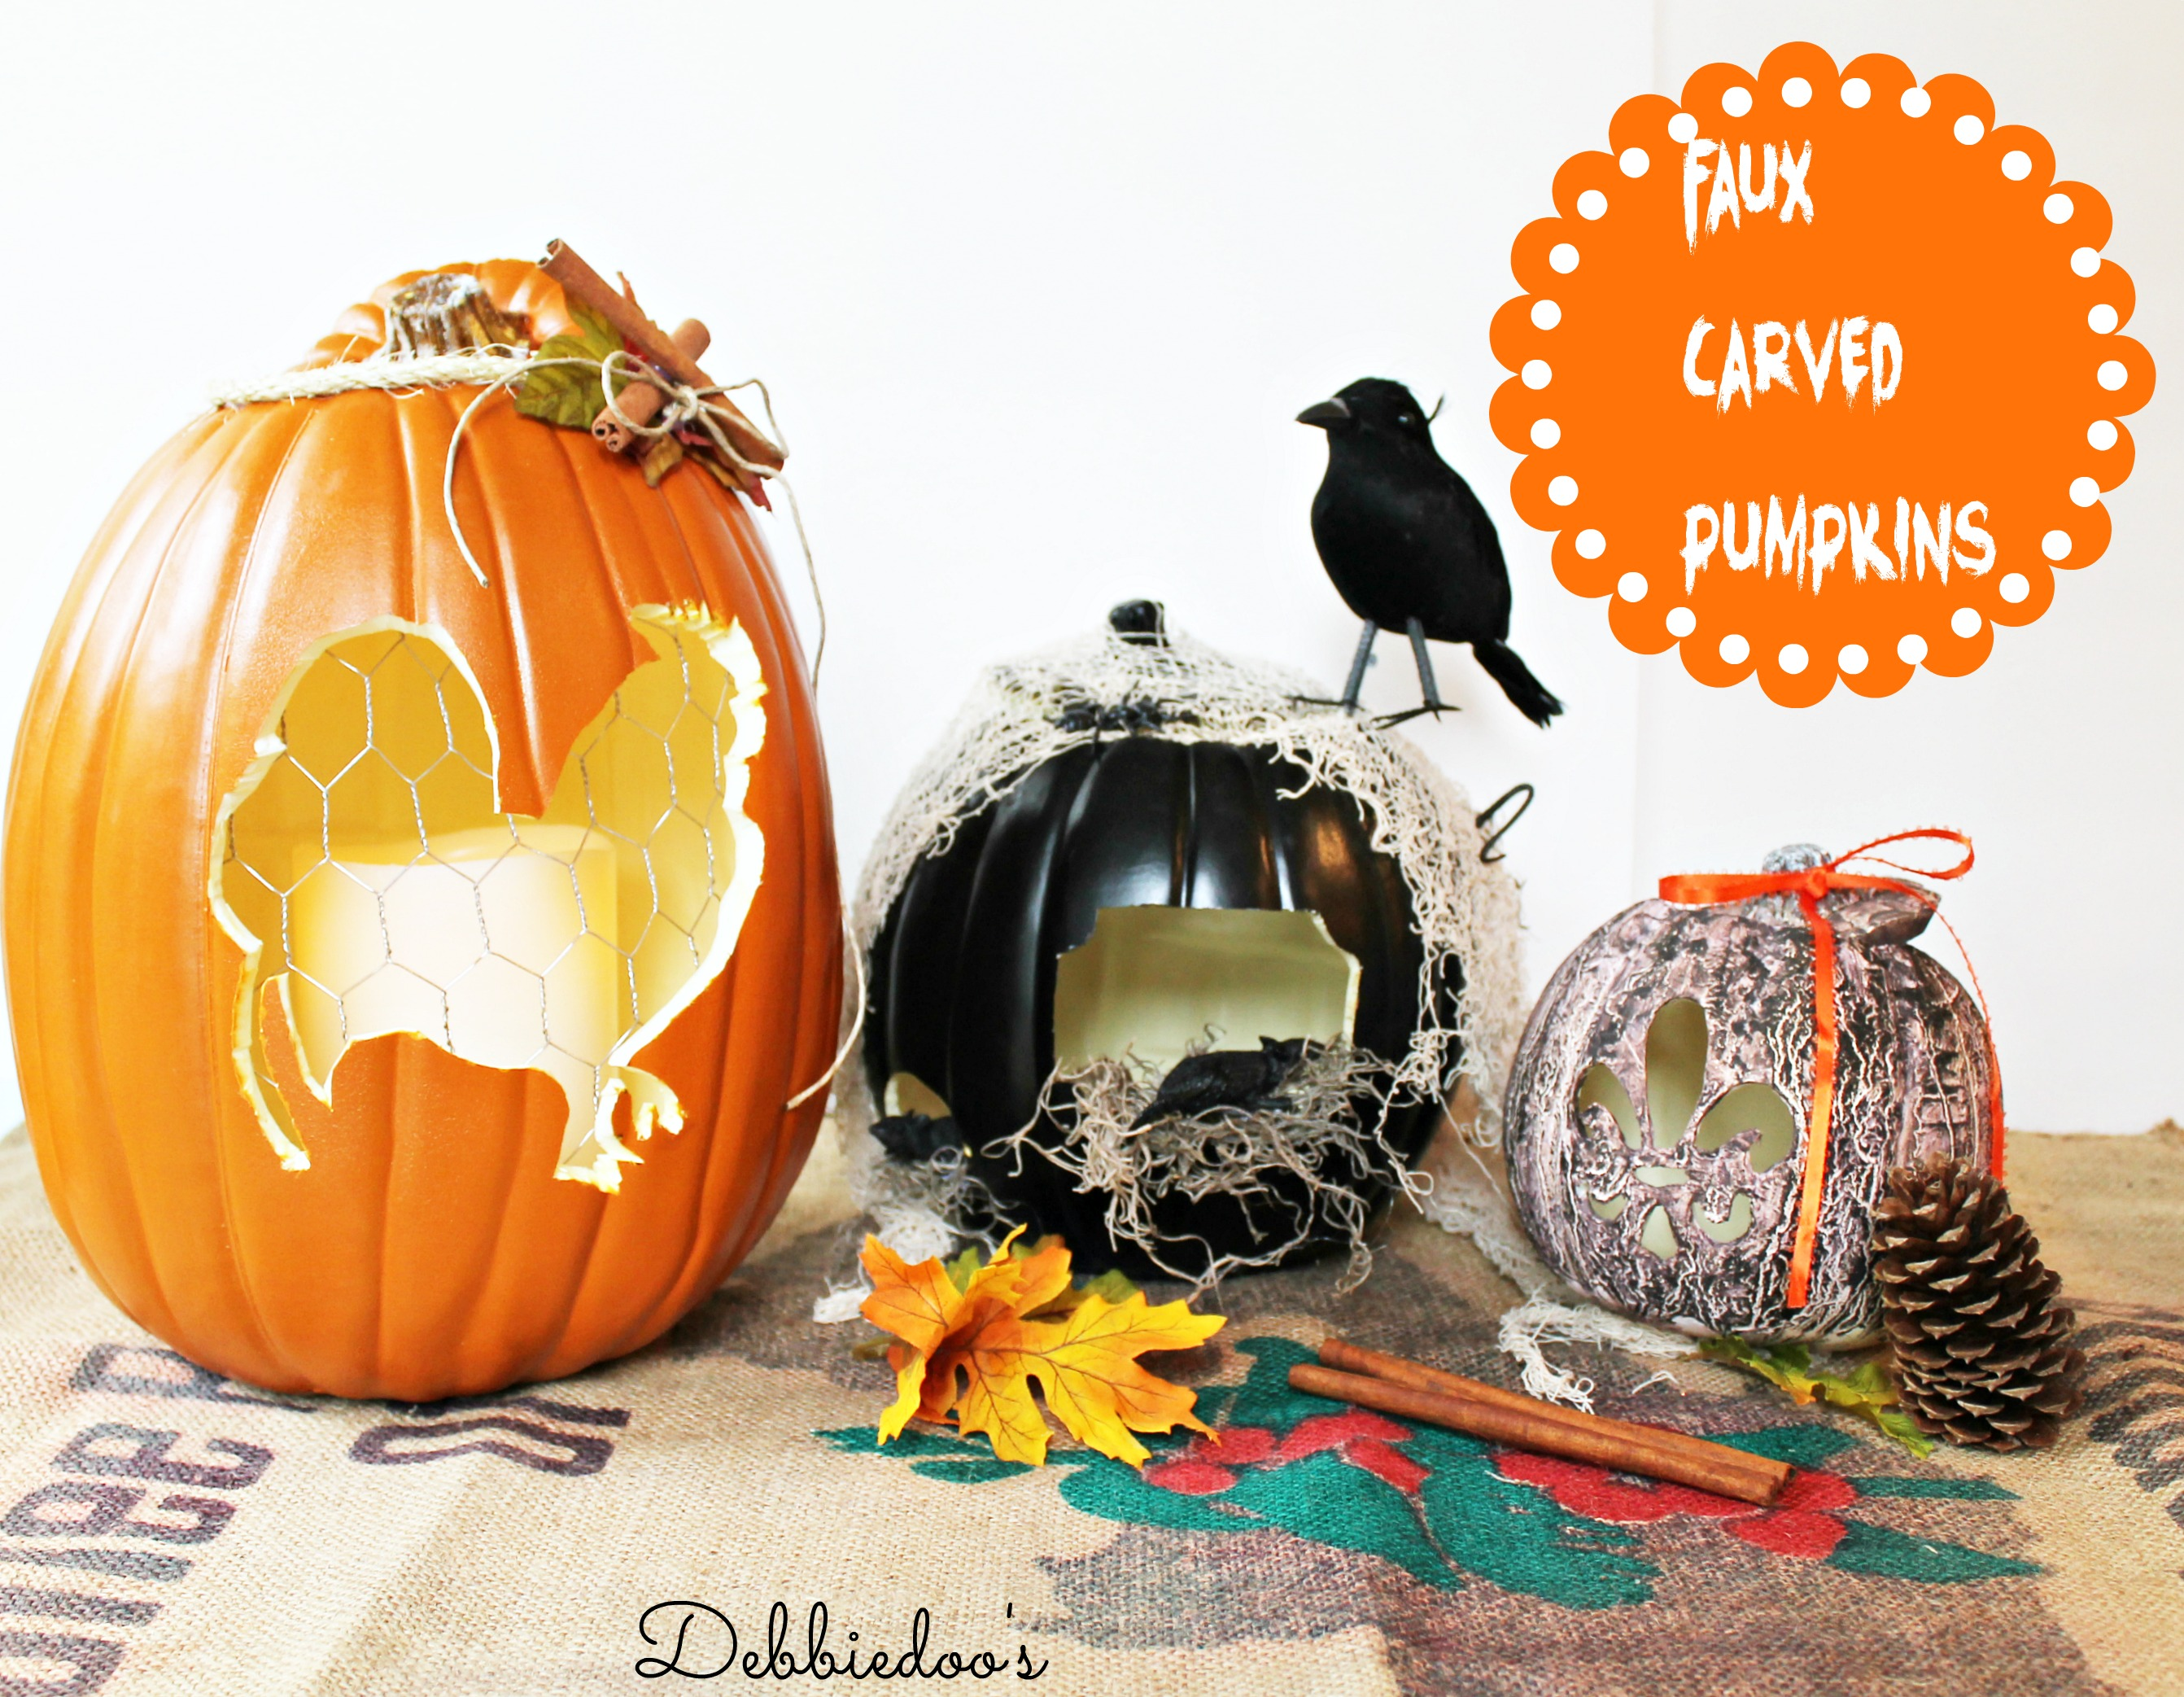 Faux carved pumpkins